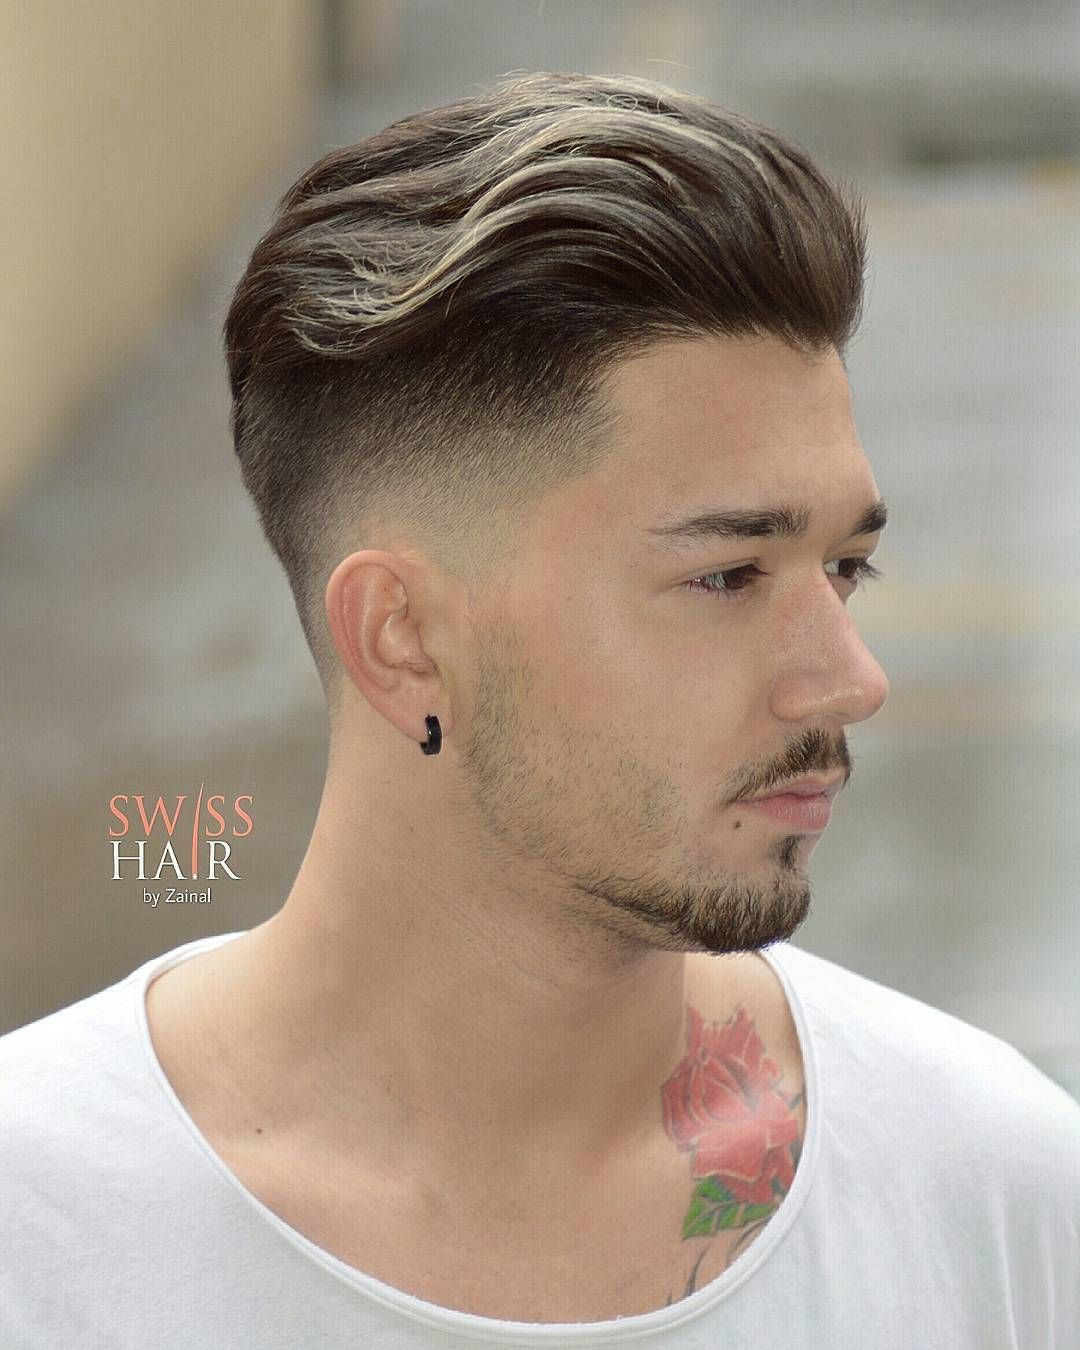 Hipster men hairstyles 25 hairstyles for hipster men look - Best Hairstyles For Women Men S Hairstyle Trends 2016 2015